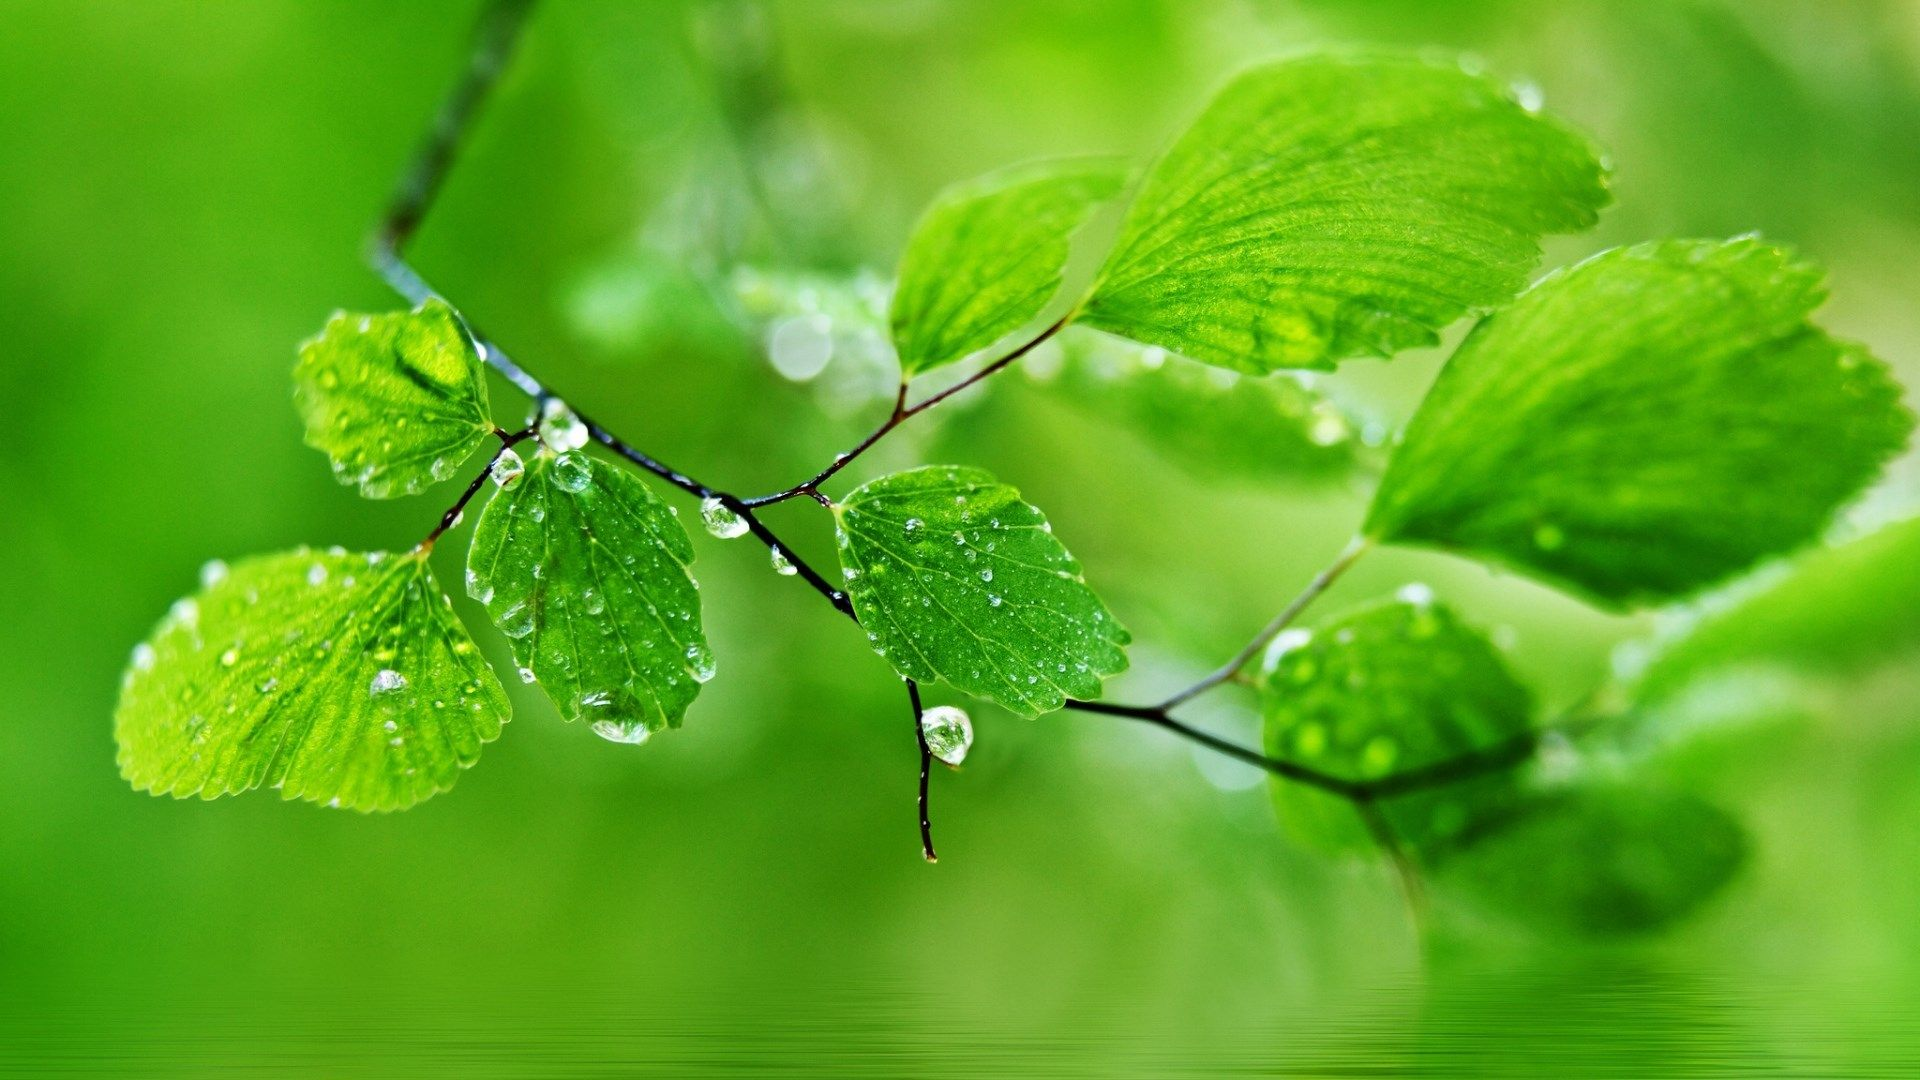 Green Leaf Nature Rain Wallpapers Hd Pictures Desktop Wallpaper Art Desktop Wallpaper Simple Aesthetic Desktop Wallpaper